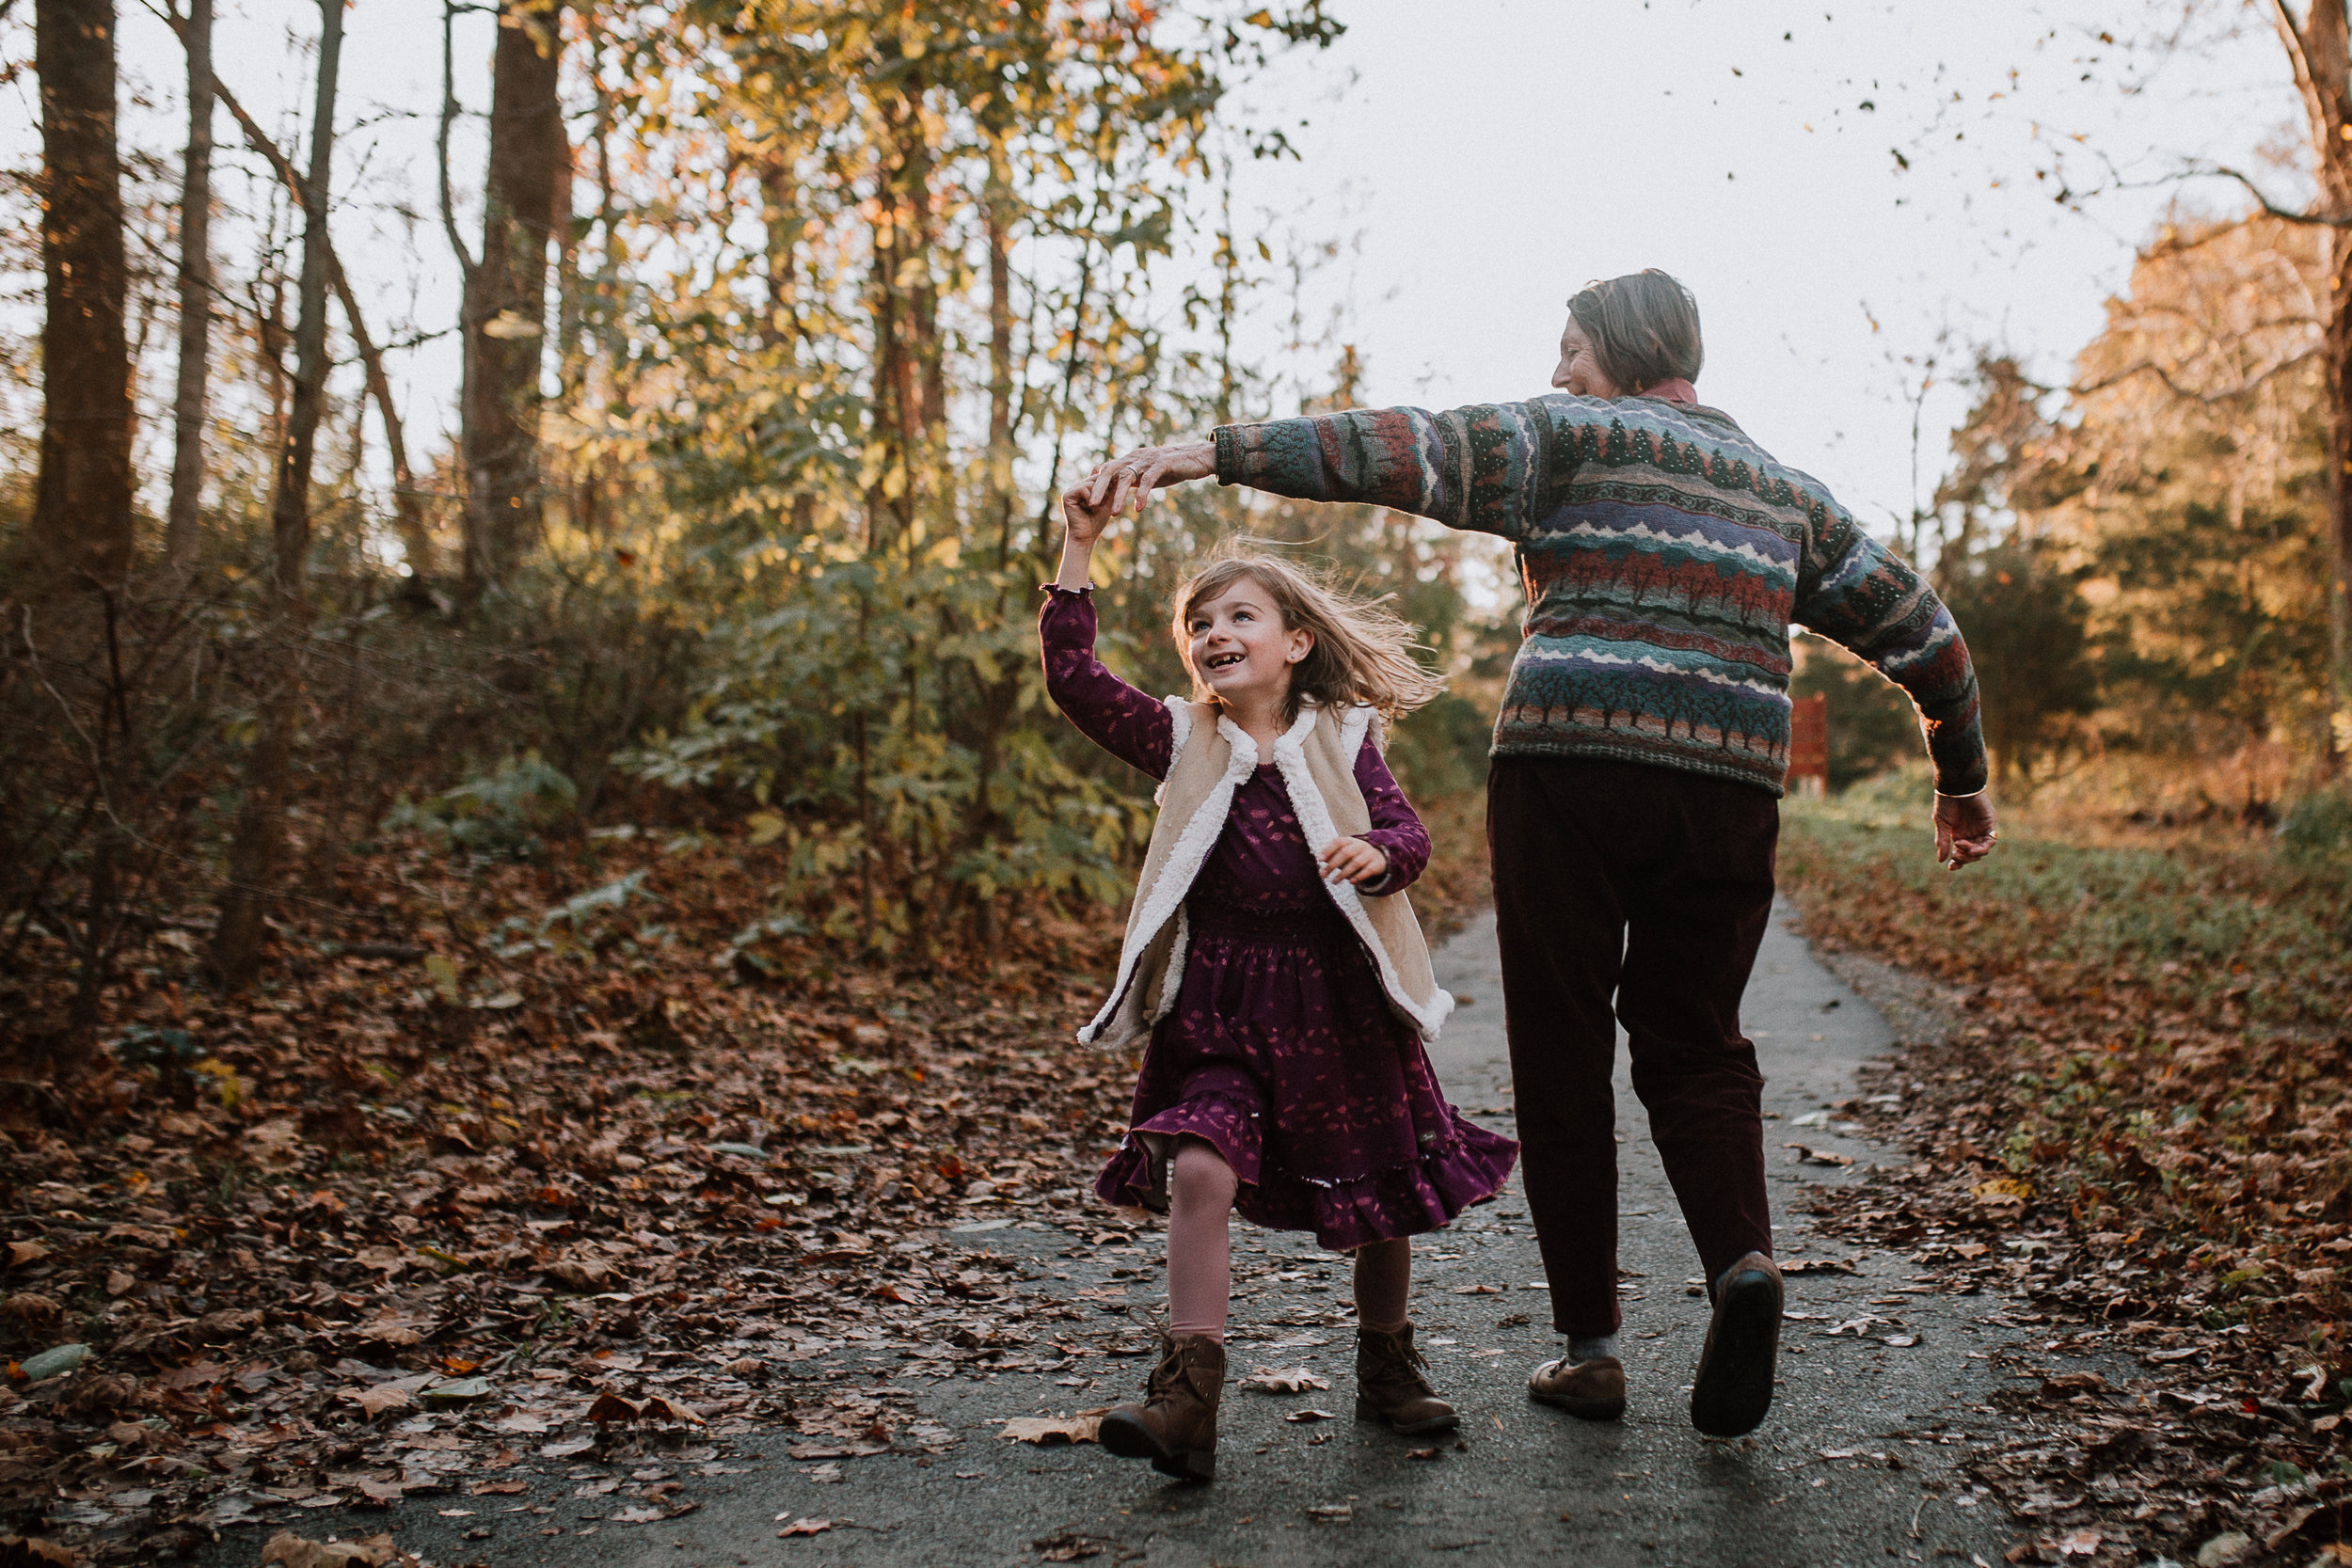 grandmother granddaughter walk twirl forest path lifestyle family documentary fall autumn sunset golden Cabell's Mill Ellanor C Lawrence Chantilly Virginia Marti Austin Photography